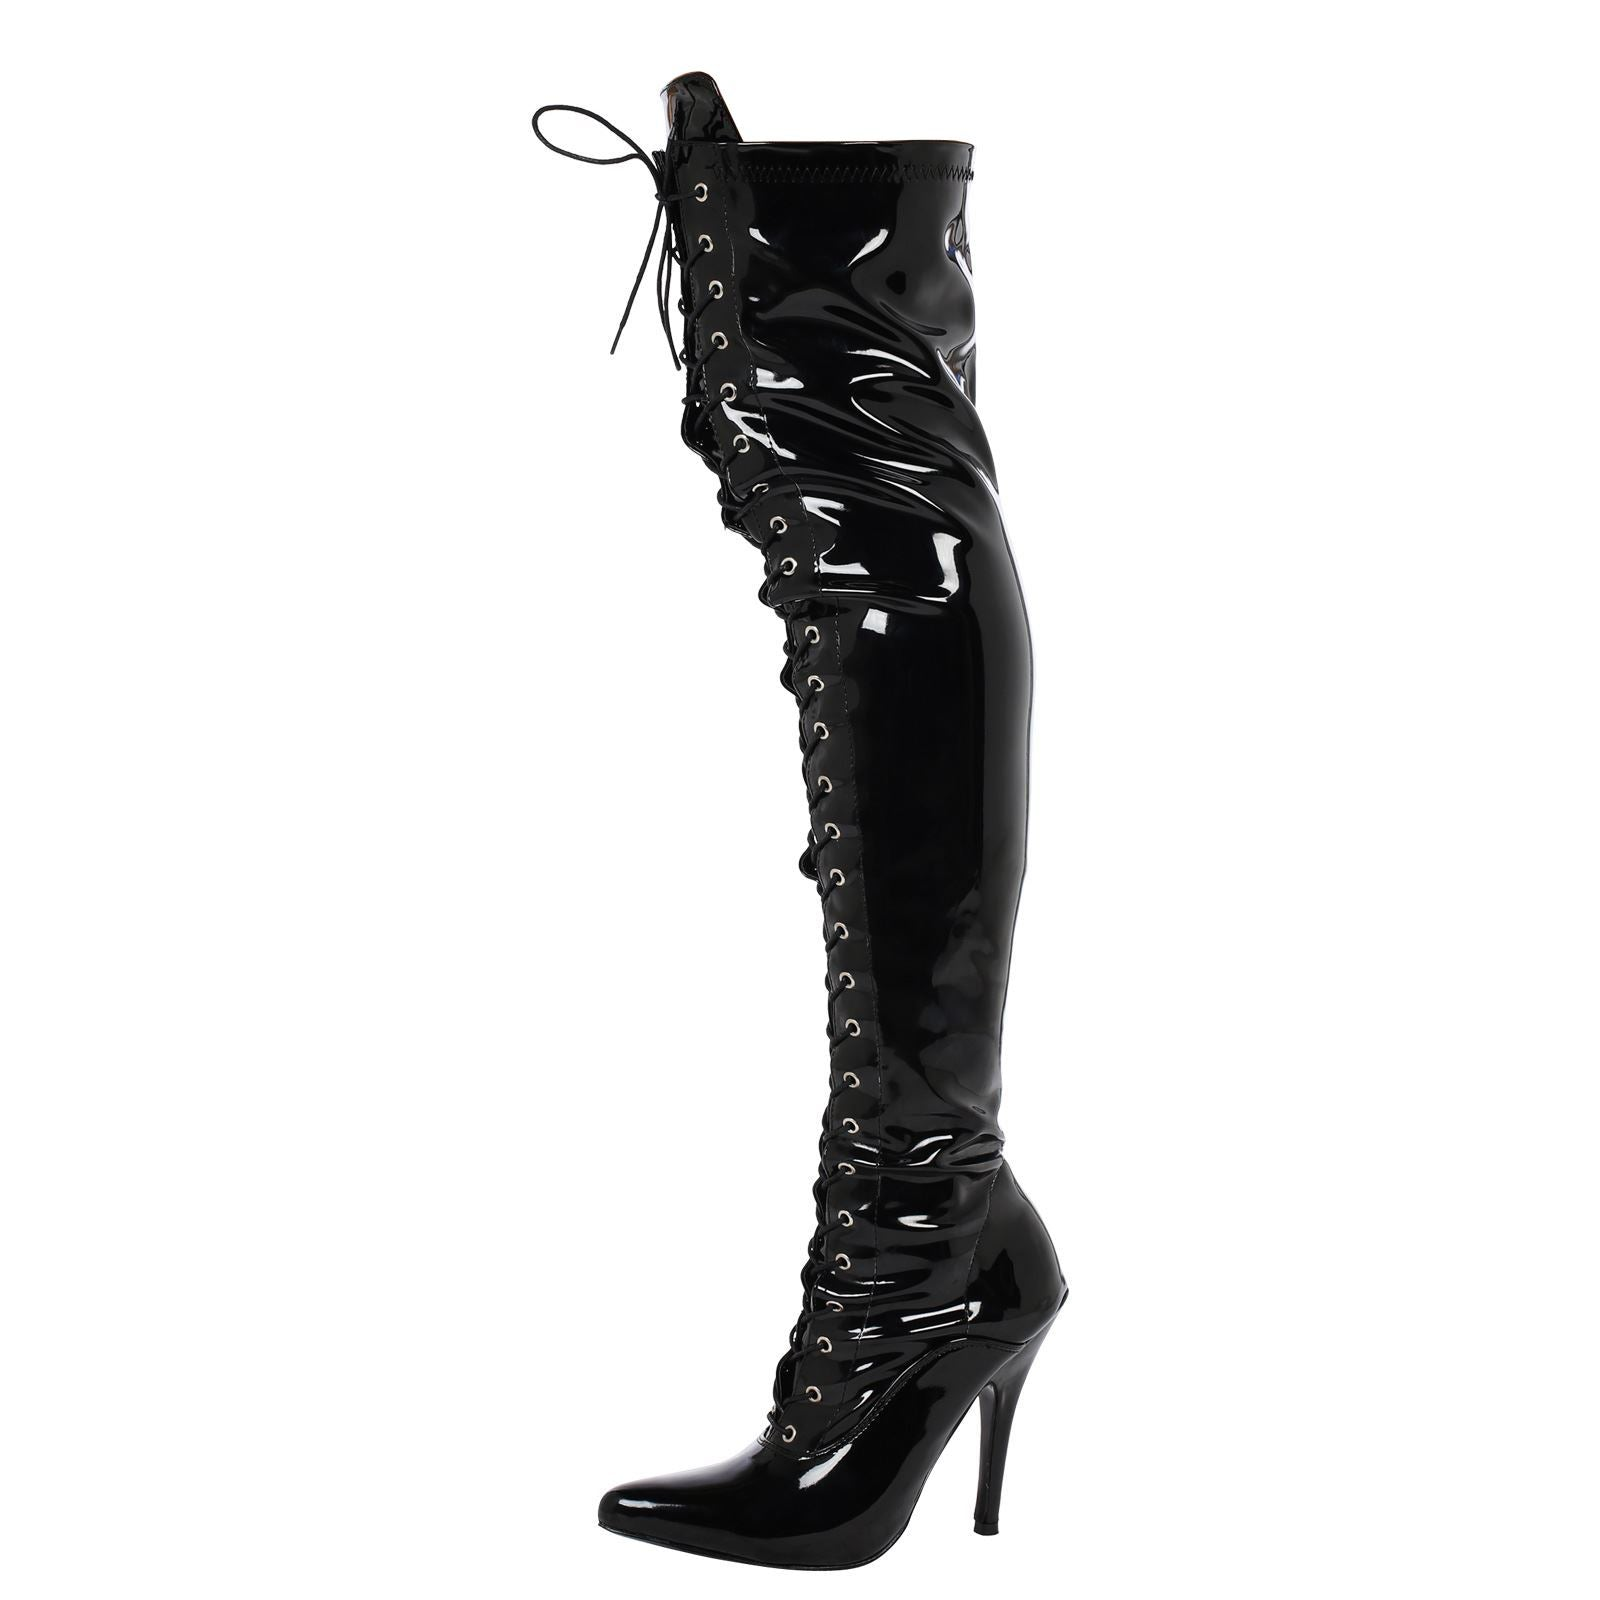 Destiny Lace Up Thigh High Boots in Black Patent